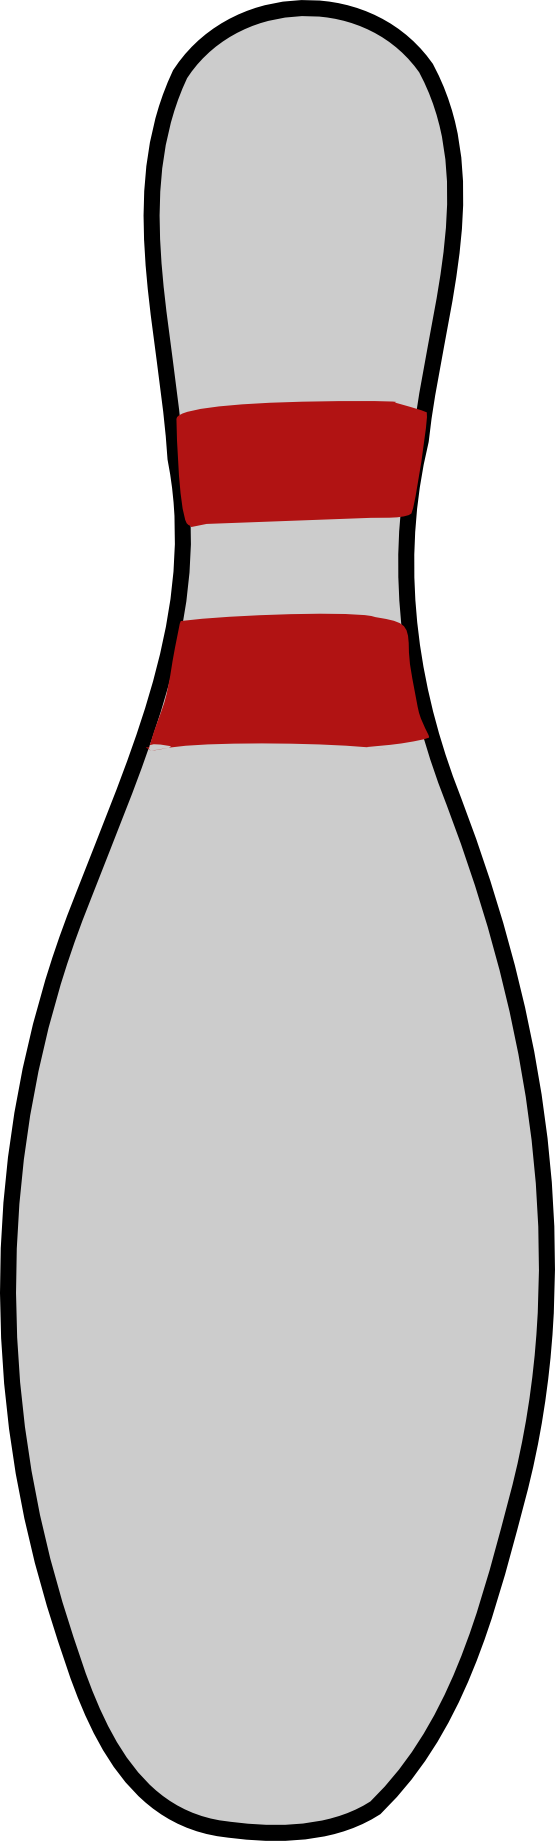 bowling pins silhouette at getdrawings com free for personal use rh getdrawings com bowling pin vector png ten pin bowling vector